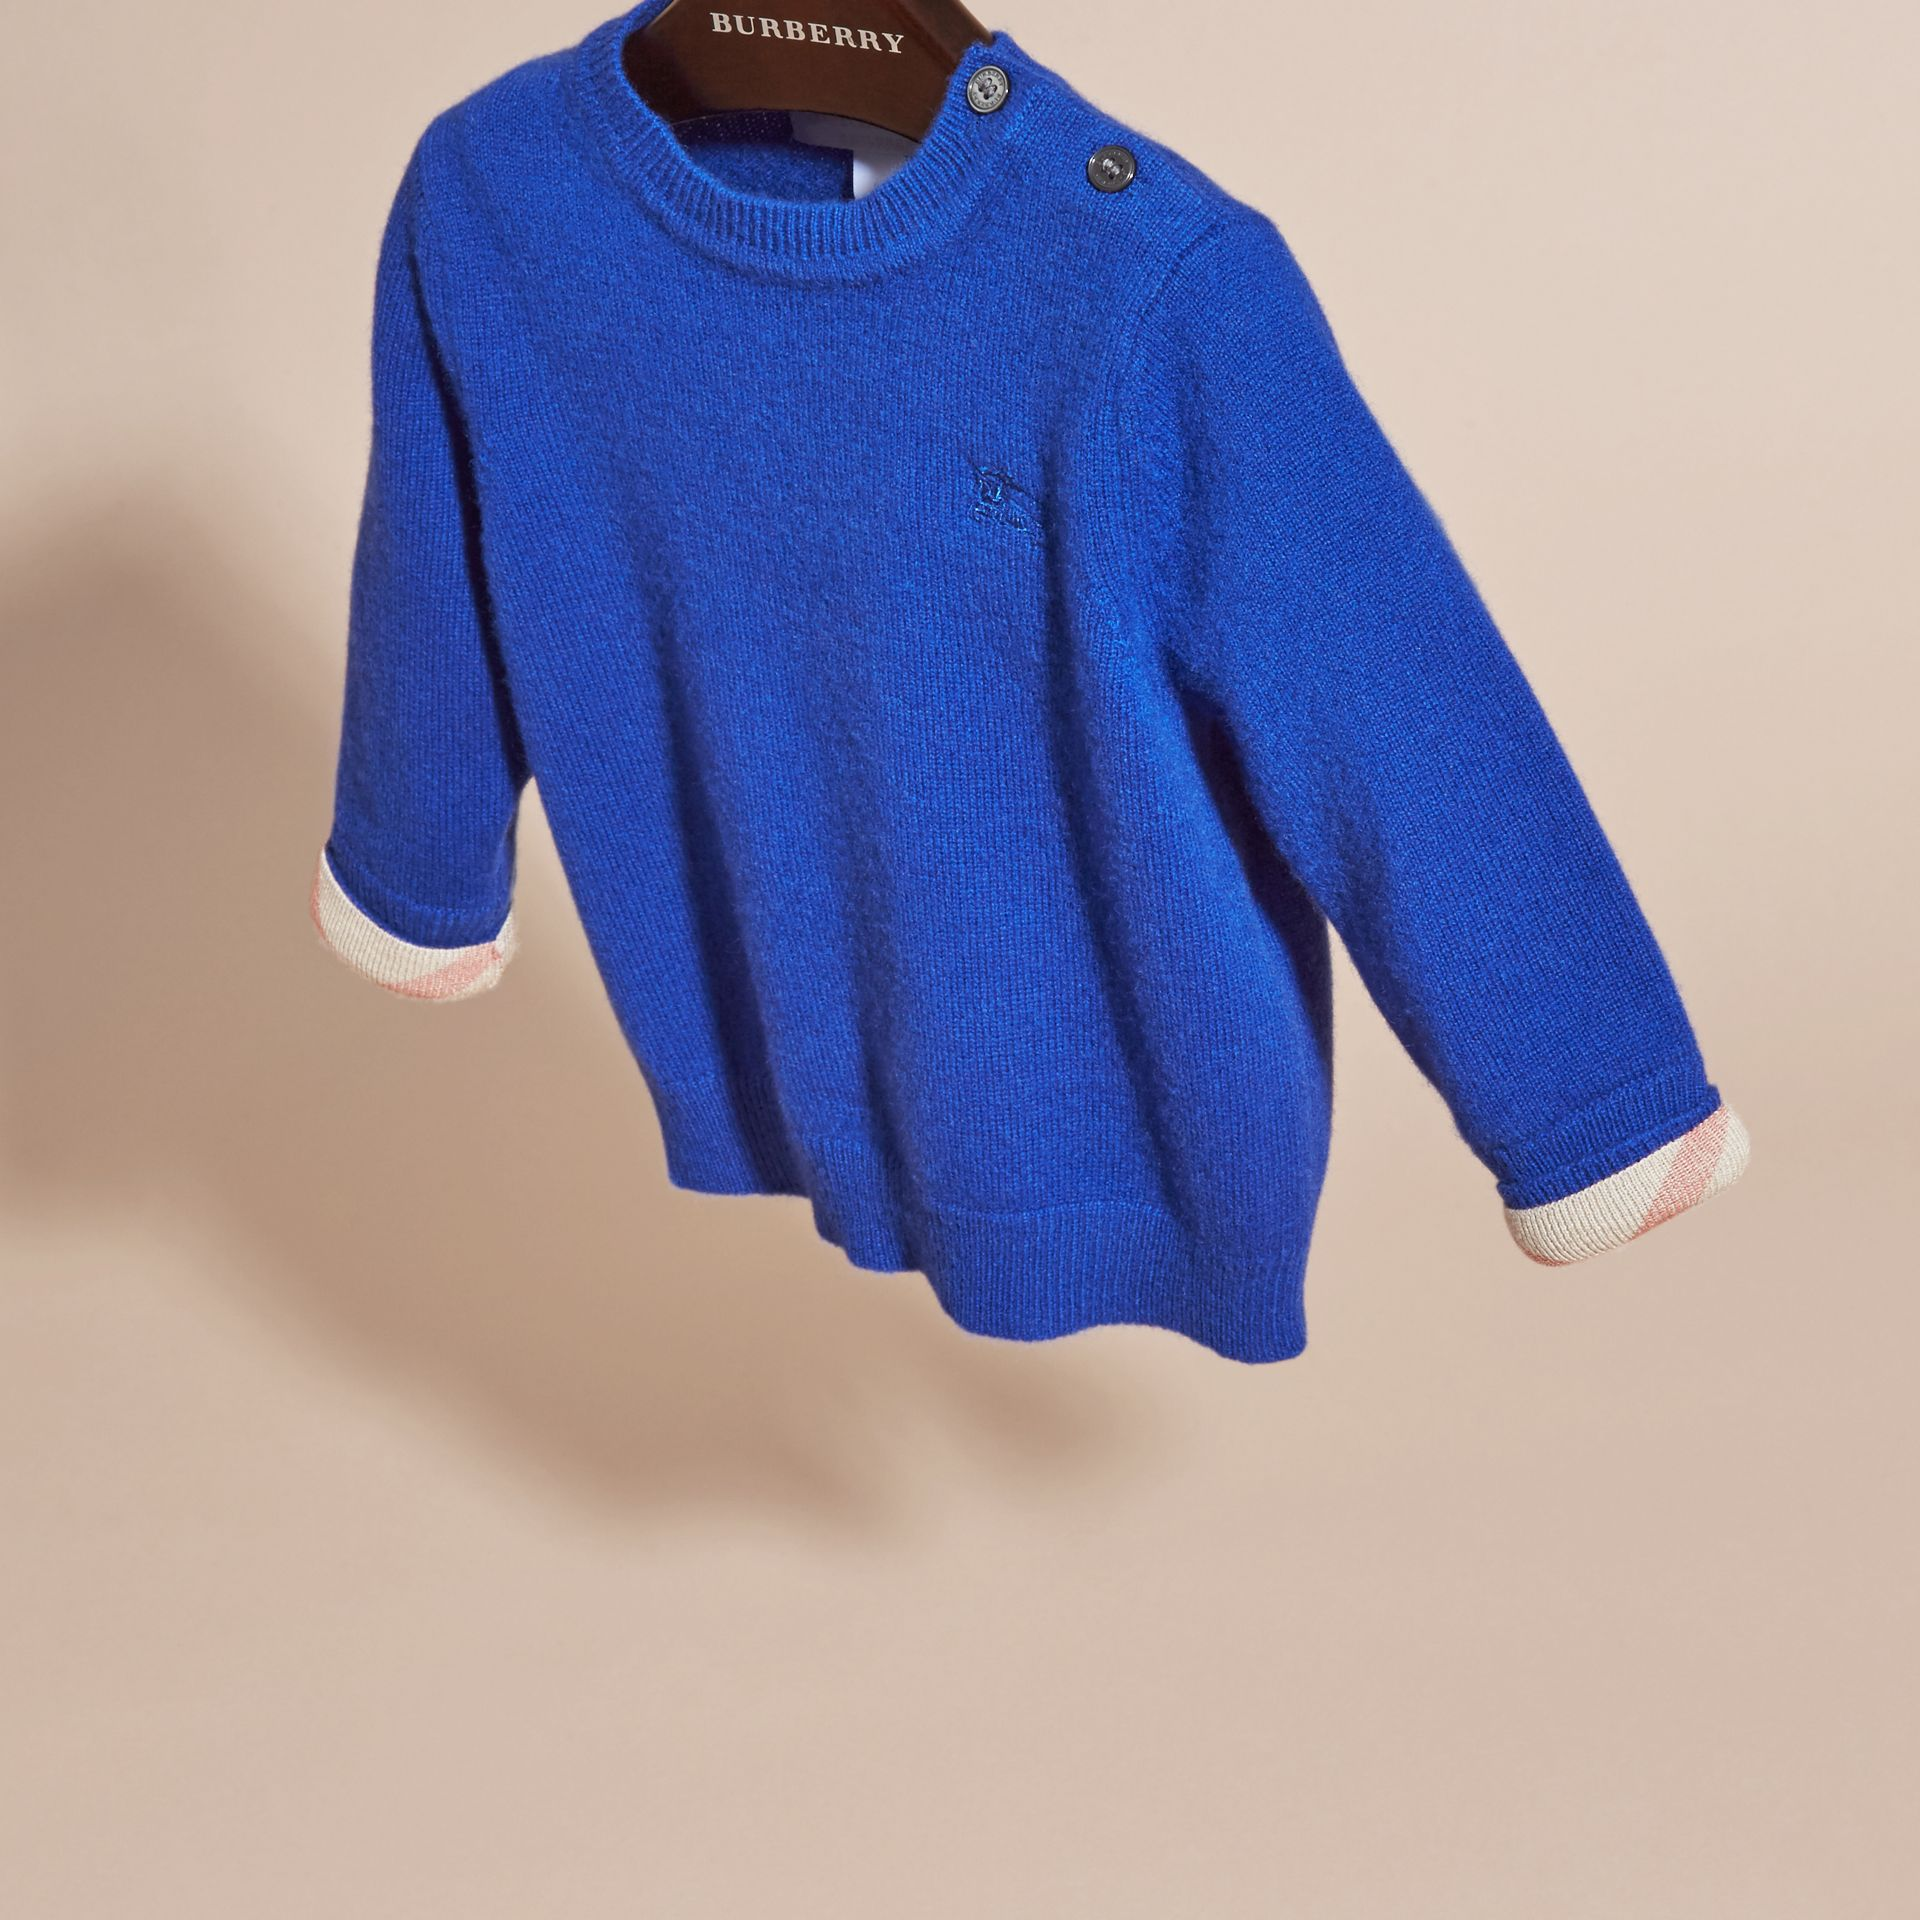 Brilliant blue Check Detail Cashmere Sweater Brilliant Blue - gallery image 3